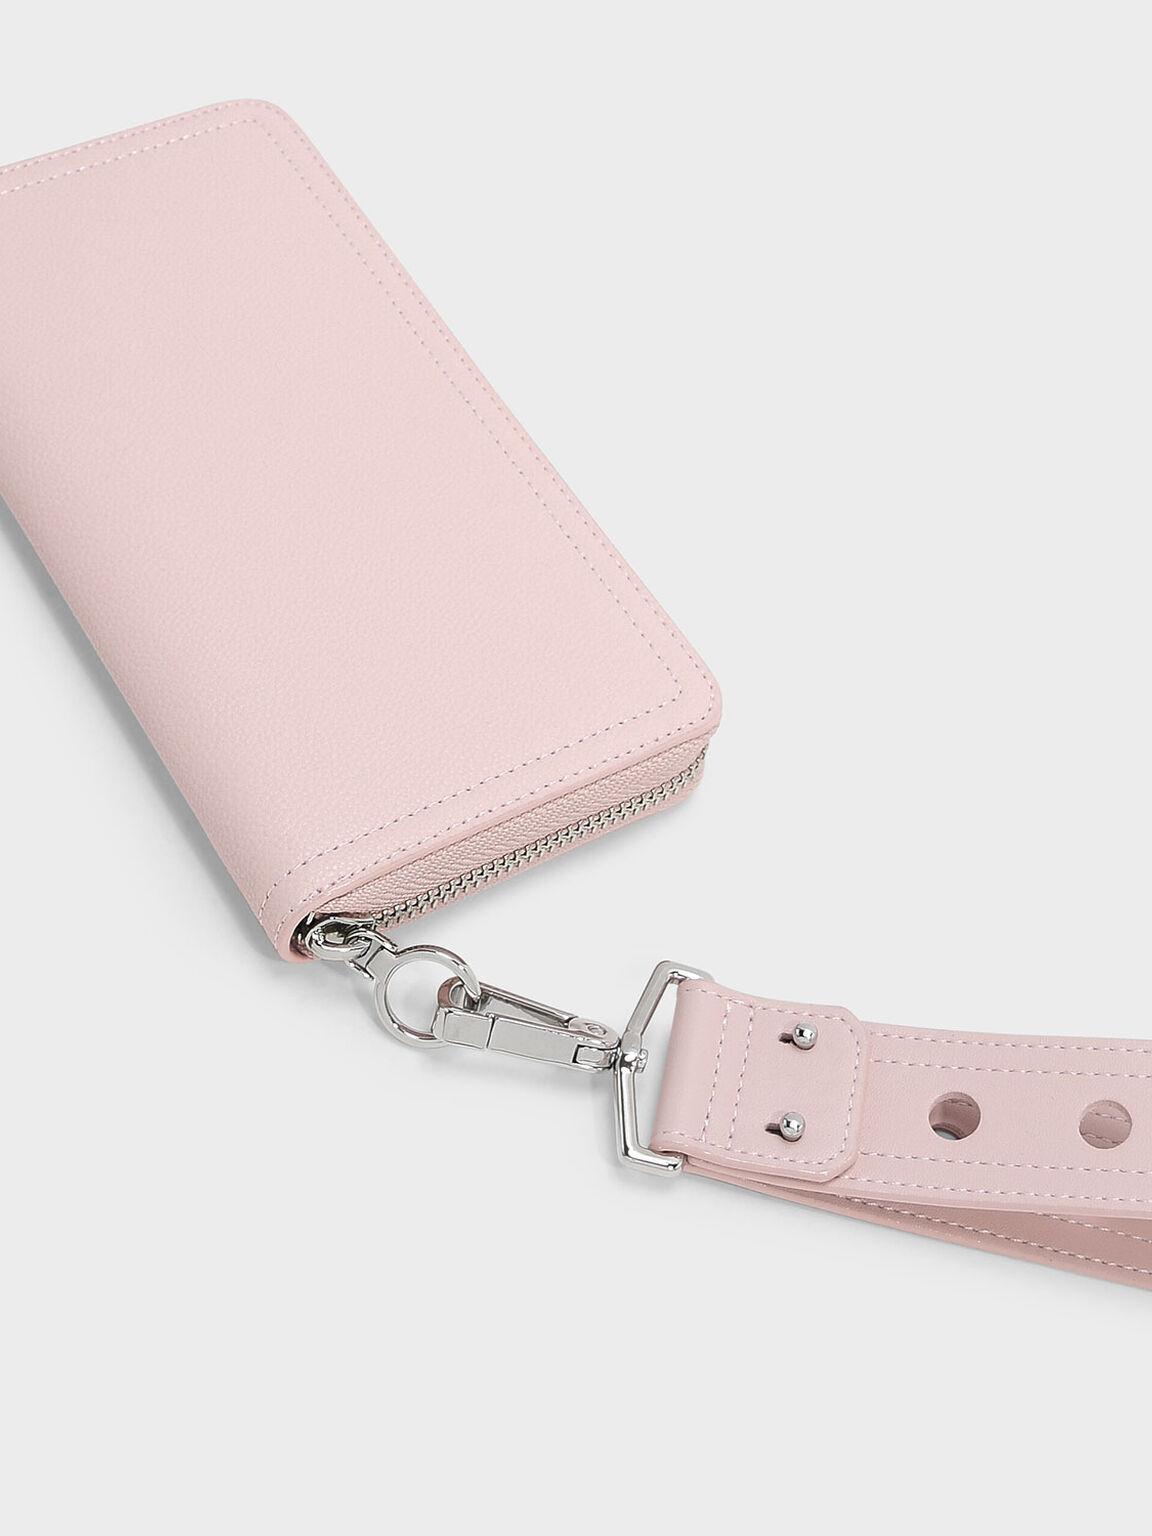 Cut Out Detail Wristlet Strap Wallet, Blush, hi-res